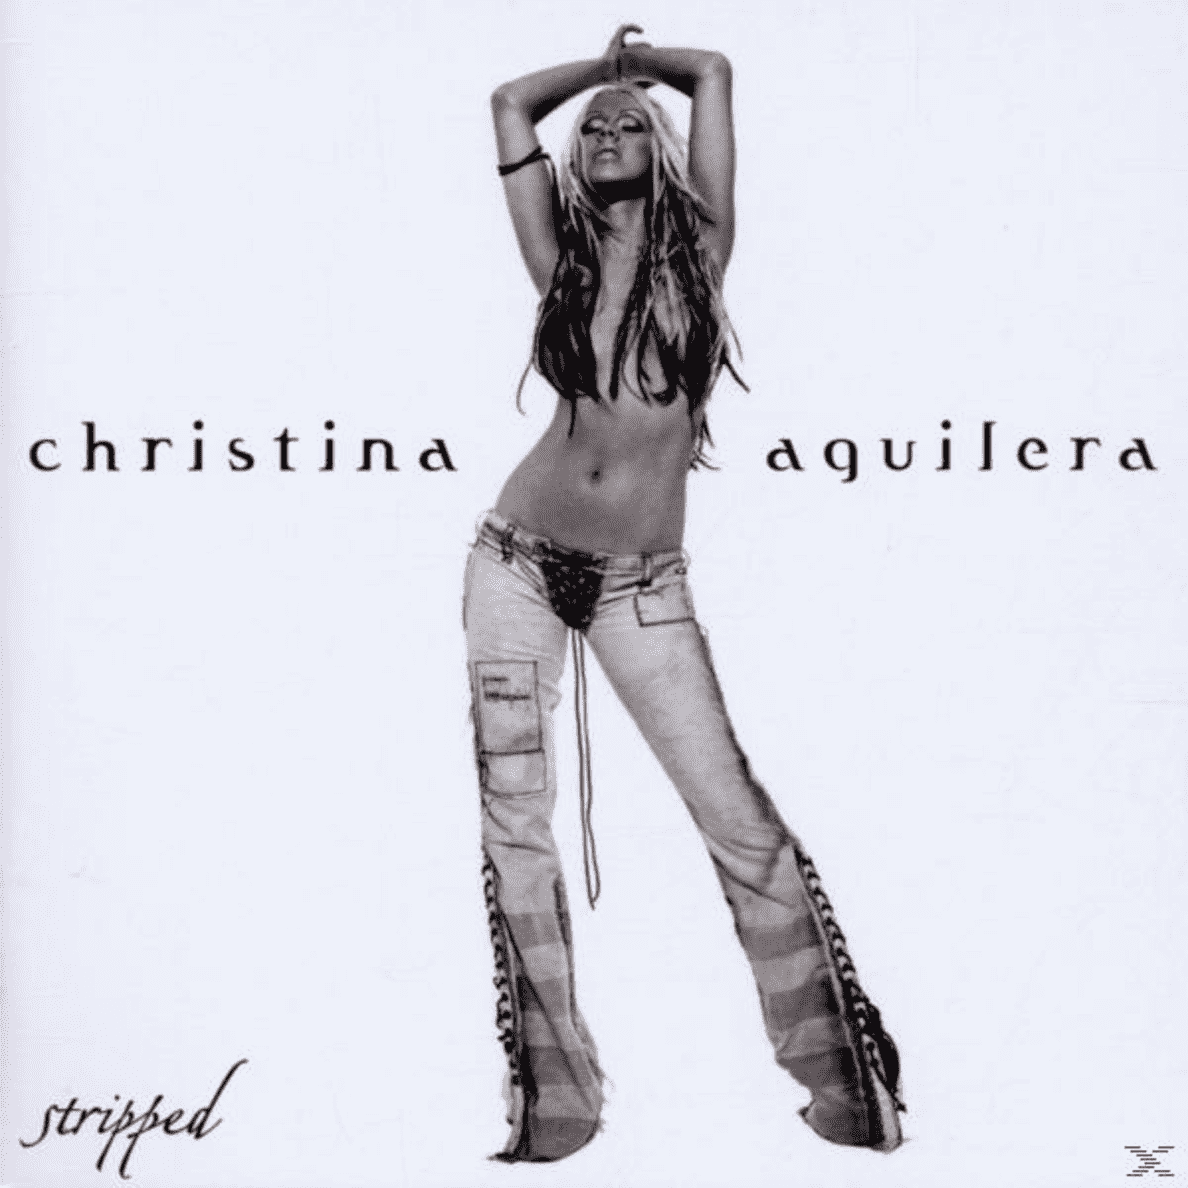 STRIPPED Christina Aguilera auf CD